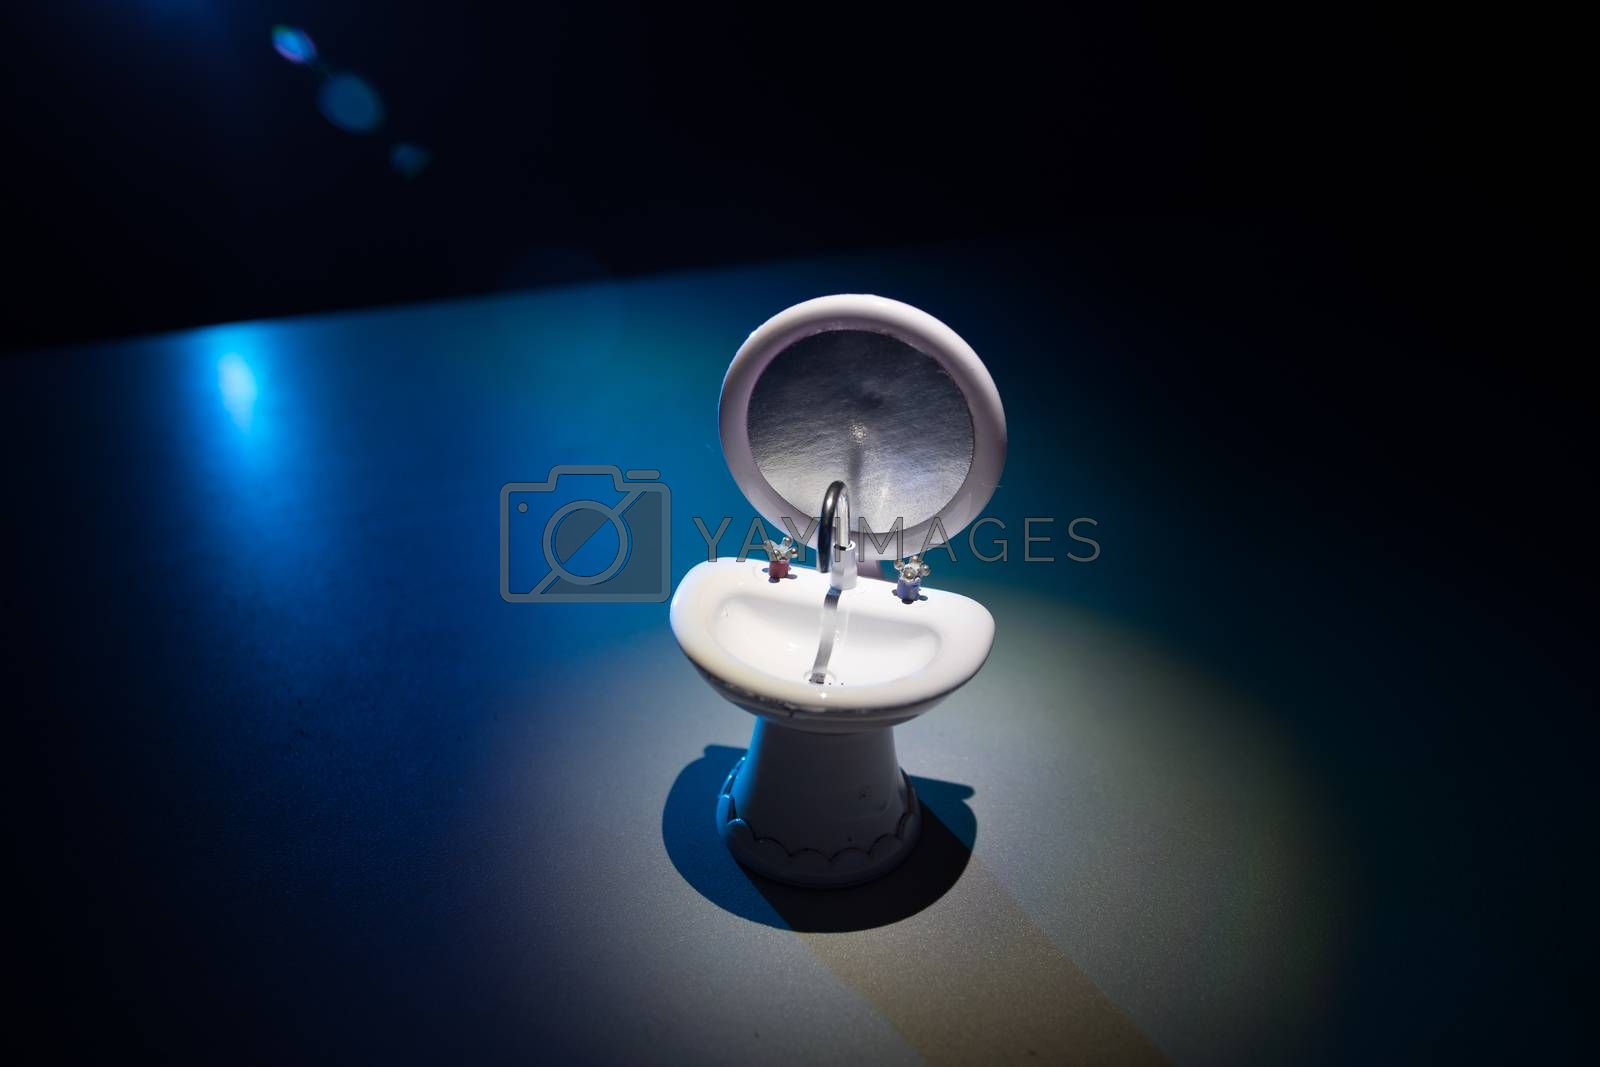 Miniature washstand on dark background. Hygiene concept. Wash hands protect yourself. Corona virus Prevention. Selective focus